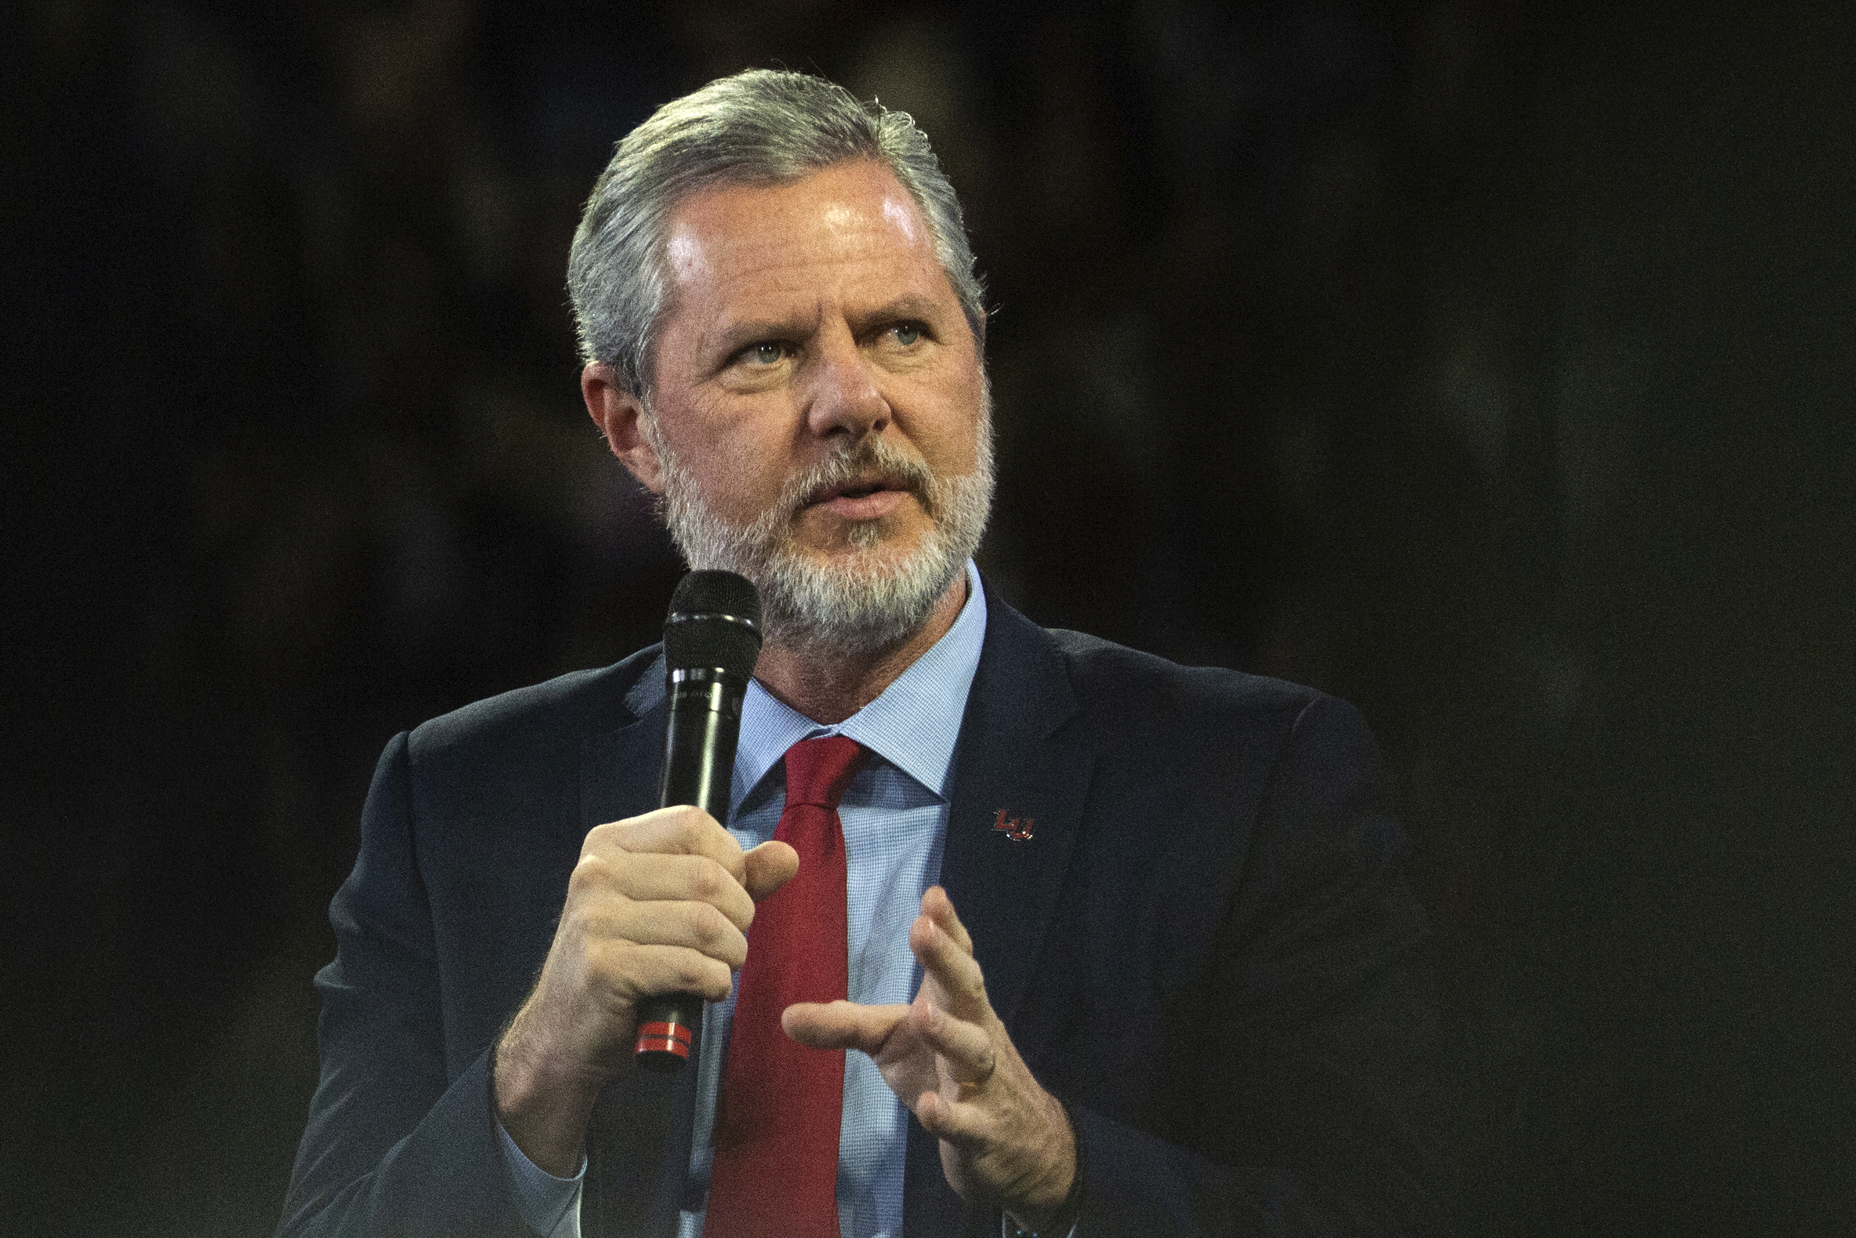 "FILE - In this, Nov. 13 2019, file photo, Liberty University President Jerry Falwell Jr. talks to Donald Trump Jr. about his new book ""Triggered"" during convocation at Liberty University in Lynchburg, Va. Liberty University has filed a civil lawsuit against its former leader, Jerry Falwell Jr., seeking millions in damages after the two parted ways acrimoniously last year. The Associated Press obtained the complaint, which was filed Thursday, April 15, 2021 in Lynchburg Circuit Court. (Emily Elconin/The News & Advance via AP, File)"